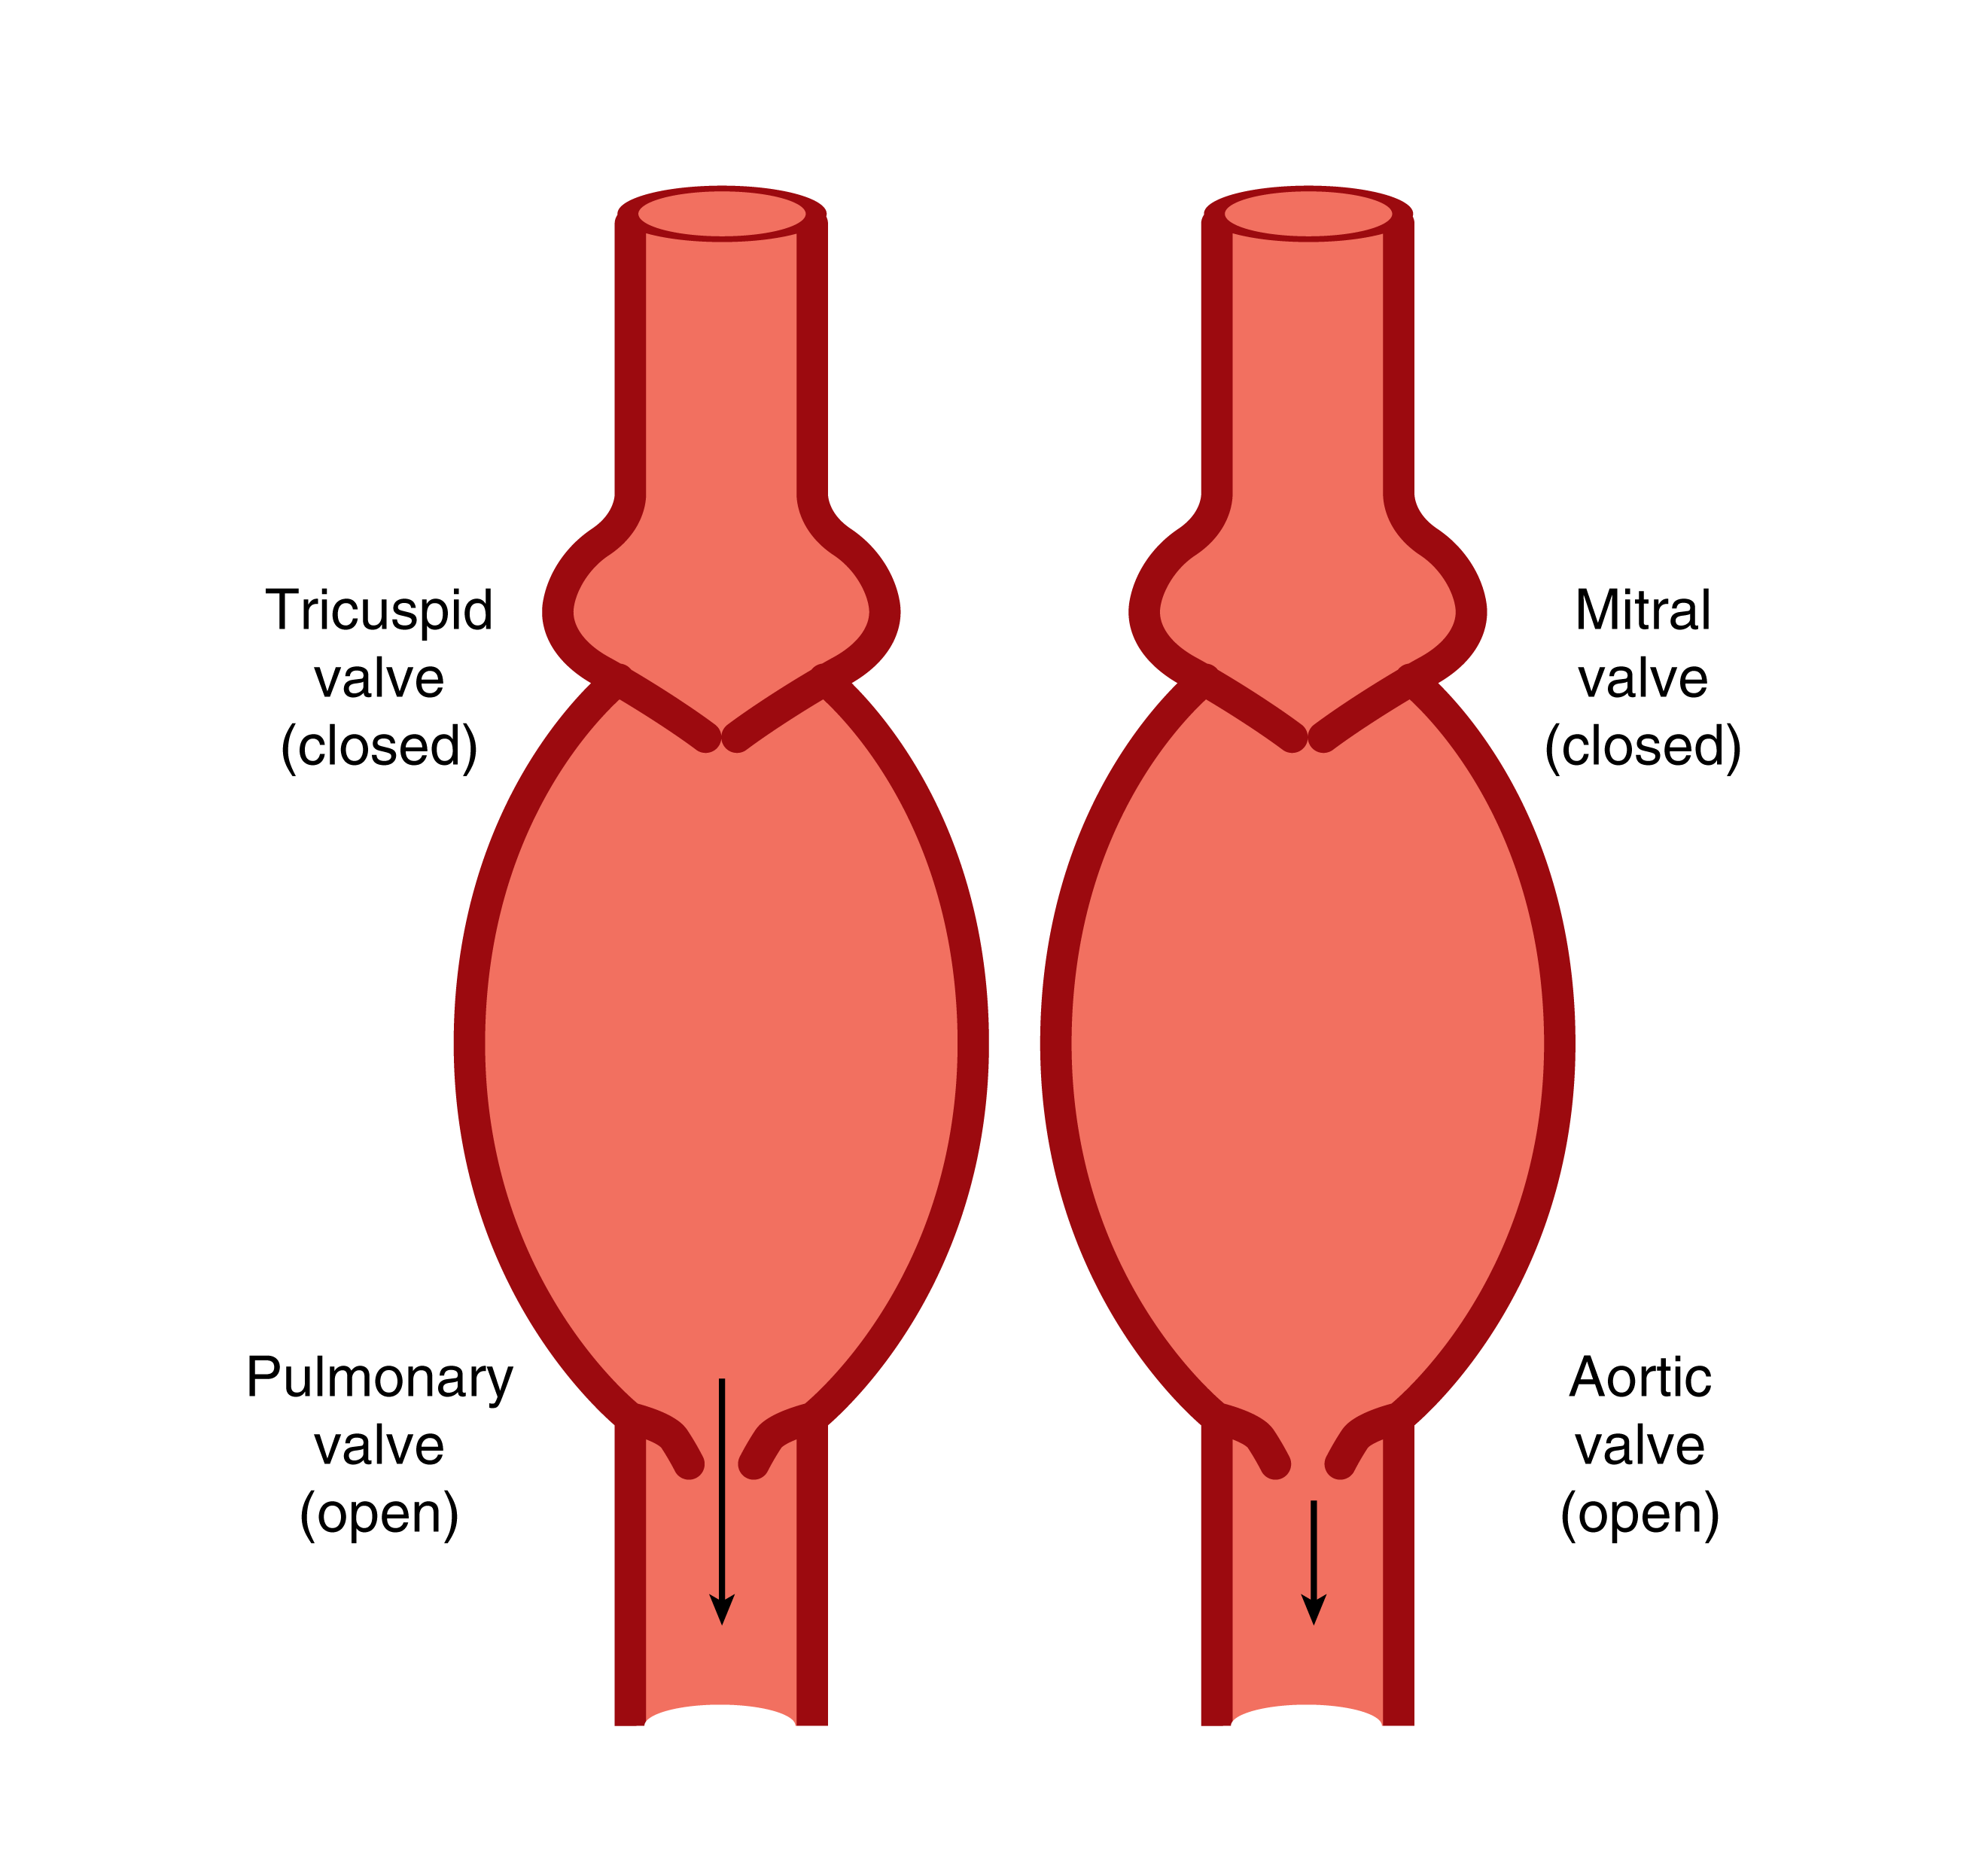 The heart ck 12 foundation during diastole filling the heart works like a filling siphon pump the inlet valves tricuspid and mitral are open but the outlet valves pulmonary and pooptronica